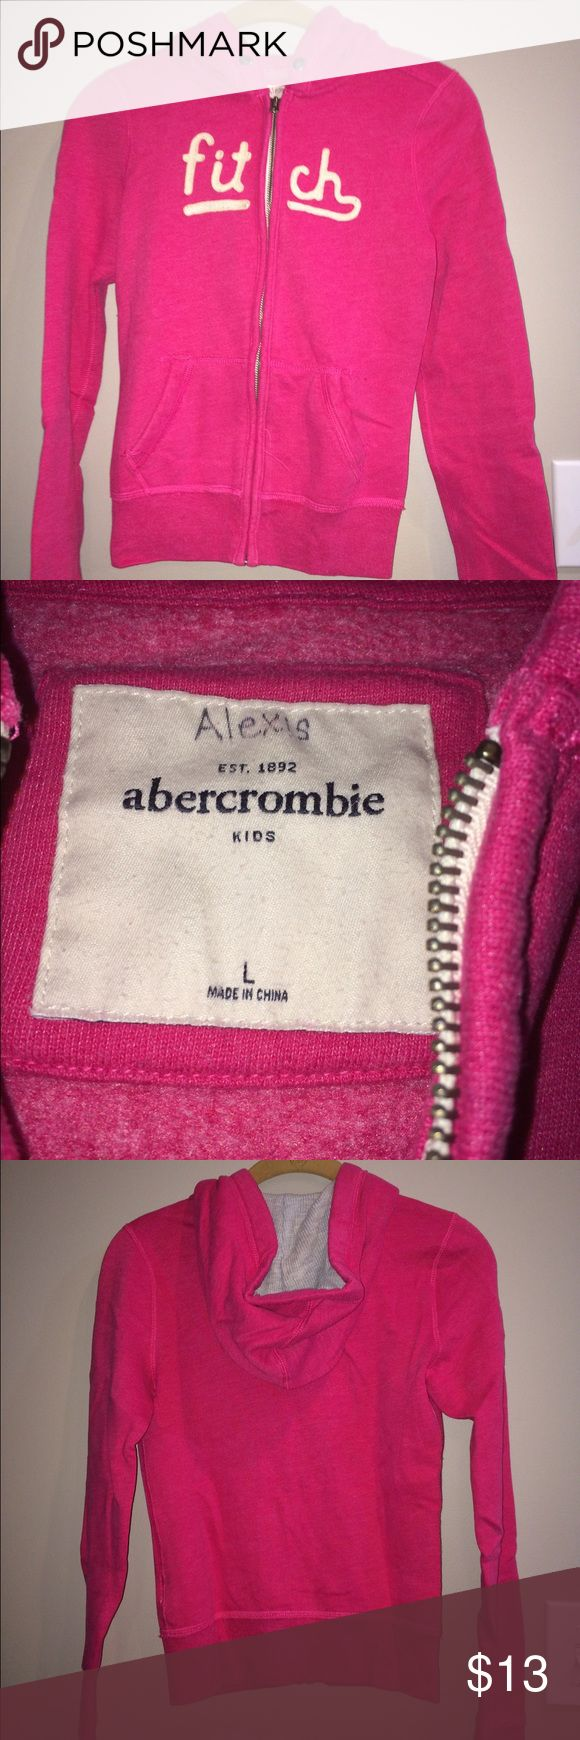 Abercrombie girls sweatshirt Very cute withe very little wear abercrombie kids Shirts & Tops Sweatshirts & Hoodies